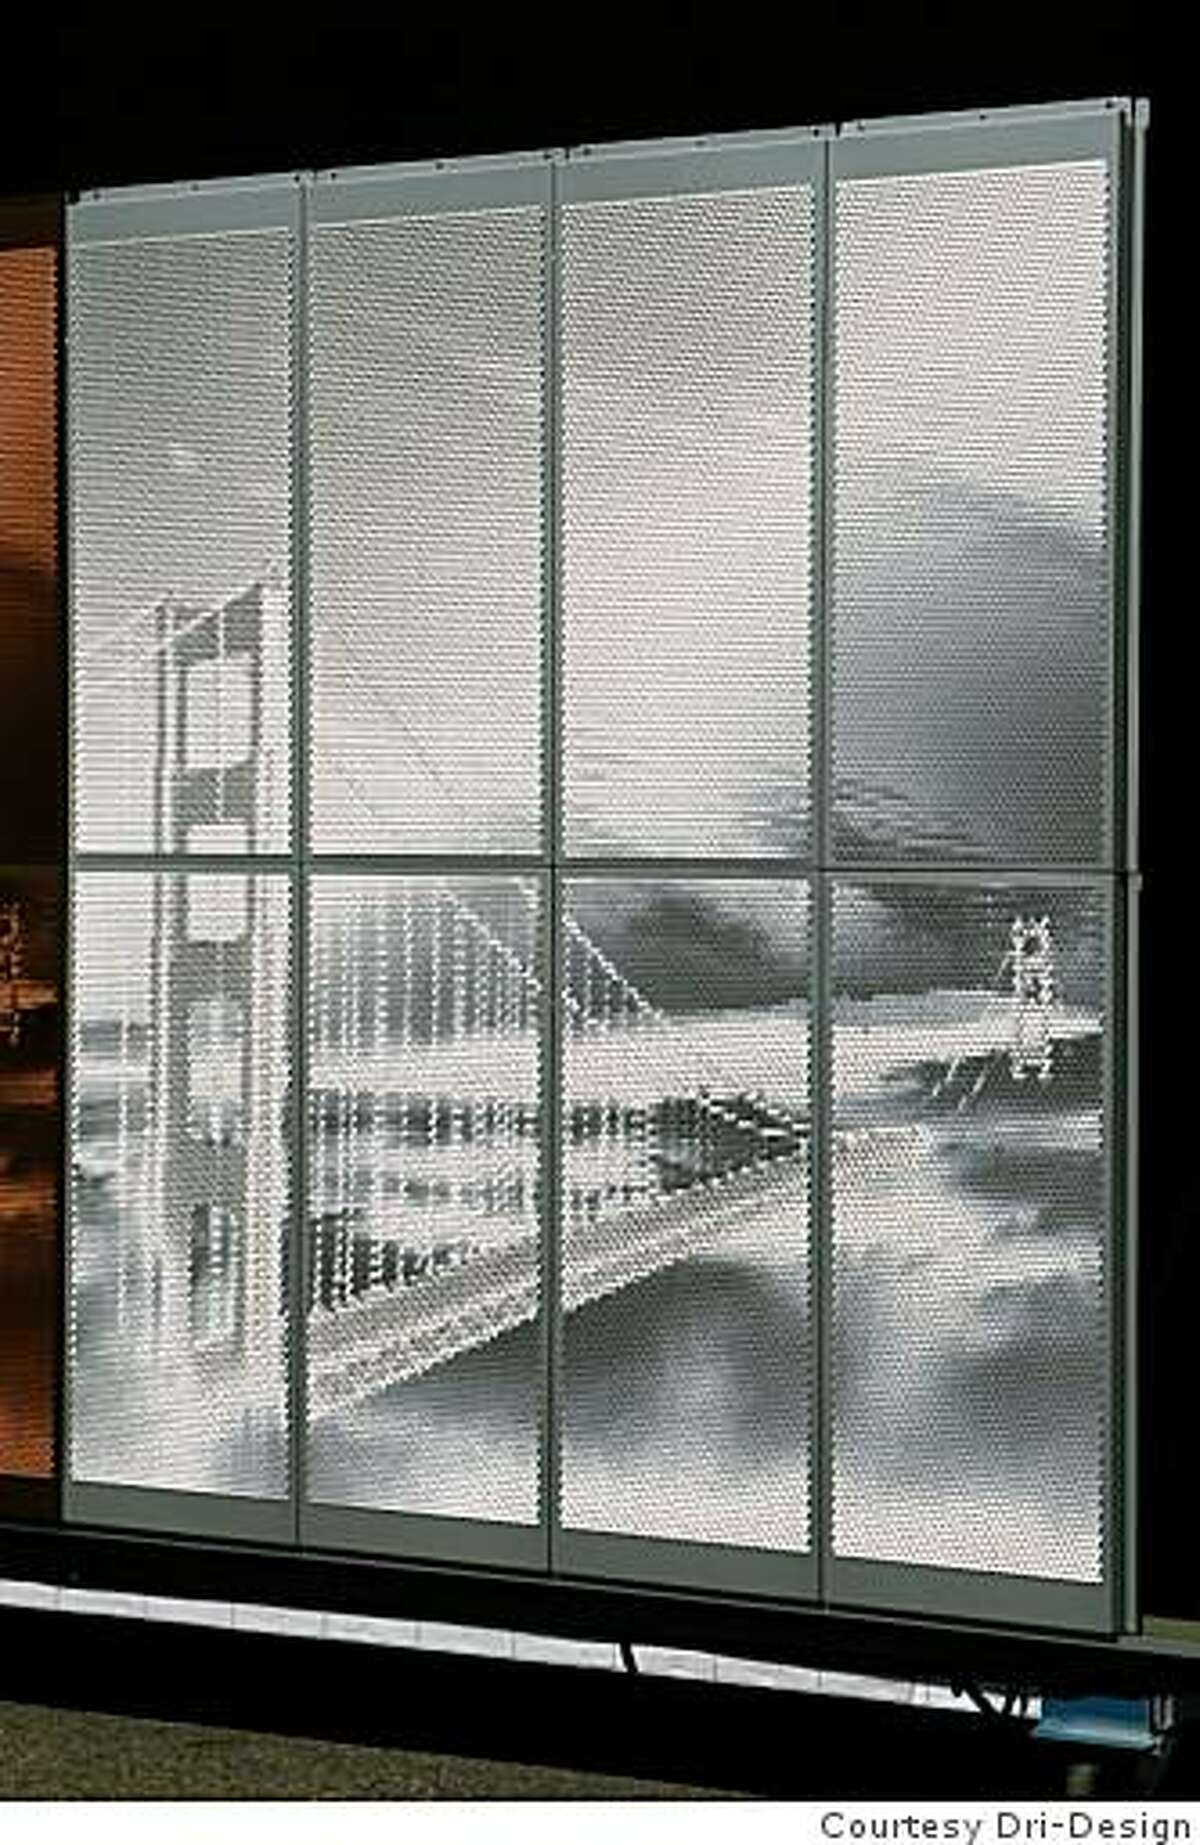 Several anodized aluminum Ombrae panels shown during the AIA convention in San Francisco by Holland, Michigan-based Dri-Design using a process conceived by artist Roderick Quin who lives in Vancouver, B. C.. Computerized tools are used to push out dots punched out of sheet metal to create highlights and shadows that form a photographic image of the Golden Gate Bridge when viewed at a distance. The dots are the equivalent of a pixel ona a computer screen. The metal panels acan be used for decorative building facades and interior walls and partitions.